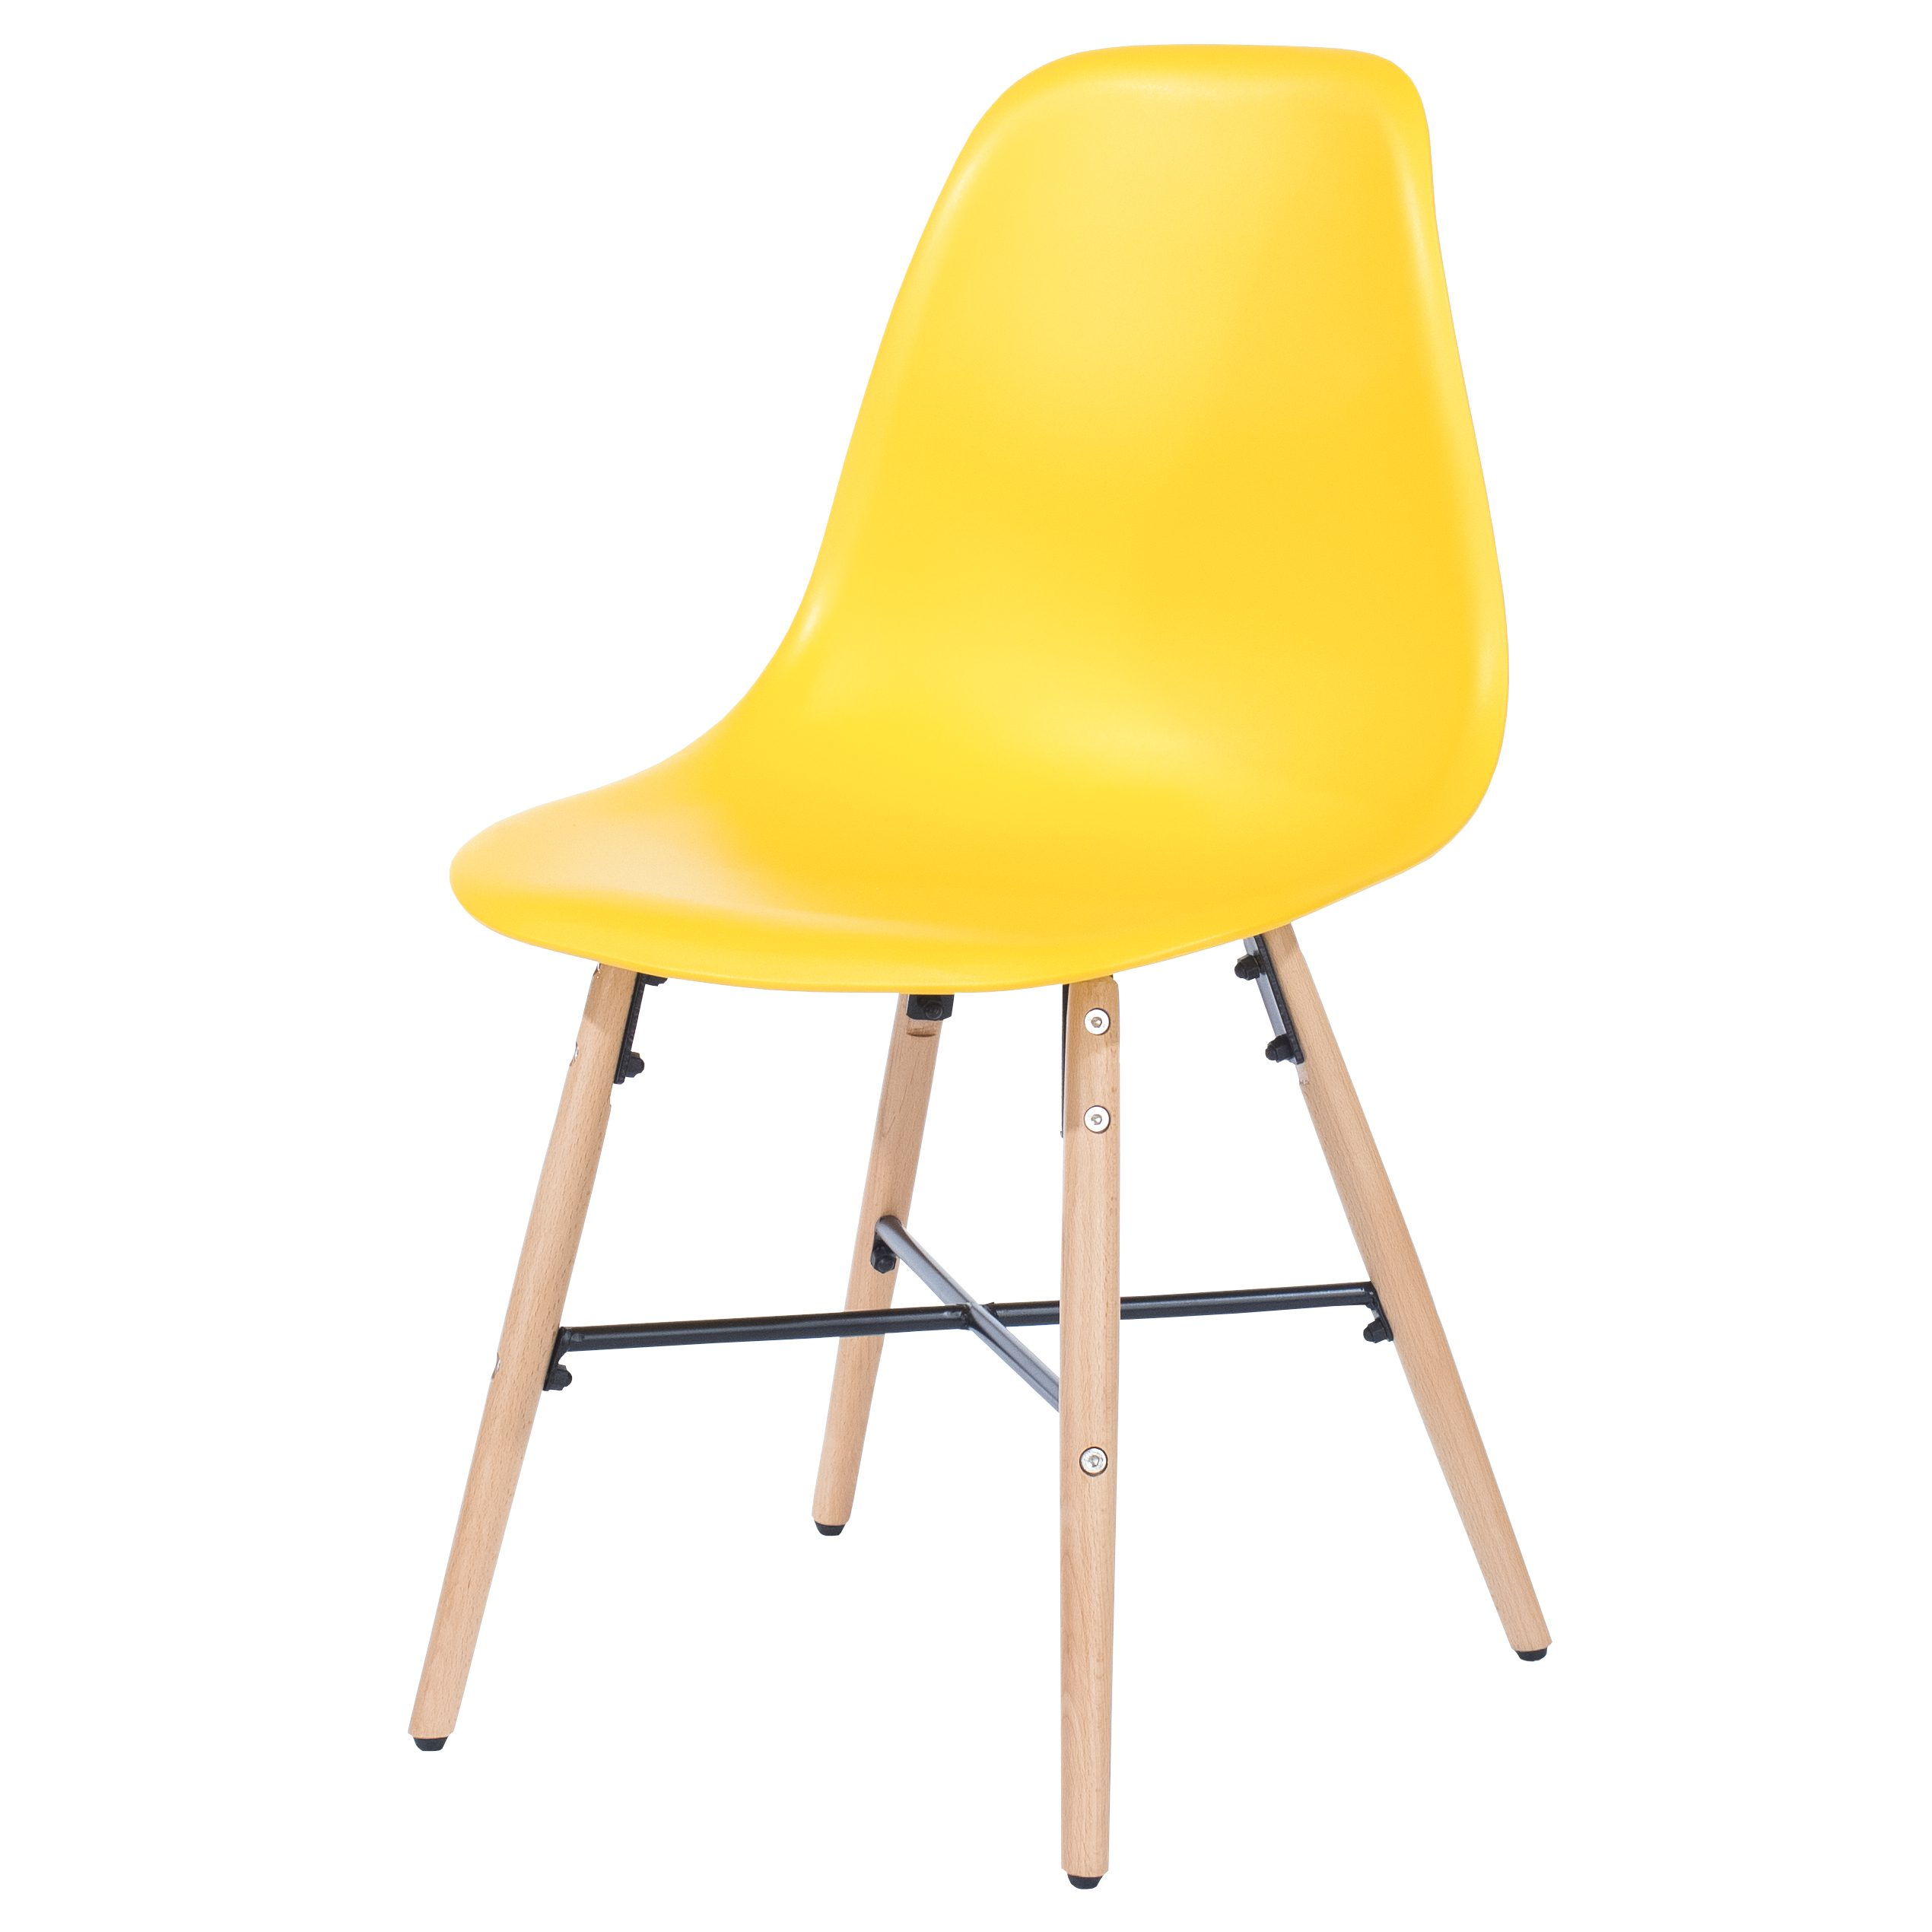 Penny yellow plastic chairs with wood legs & metal cross rails (pair)